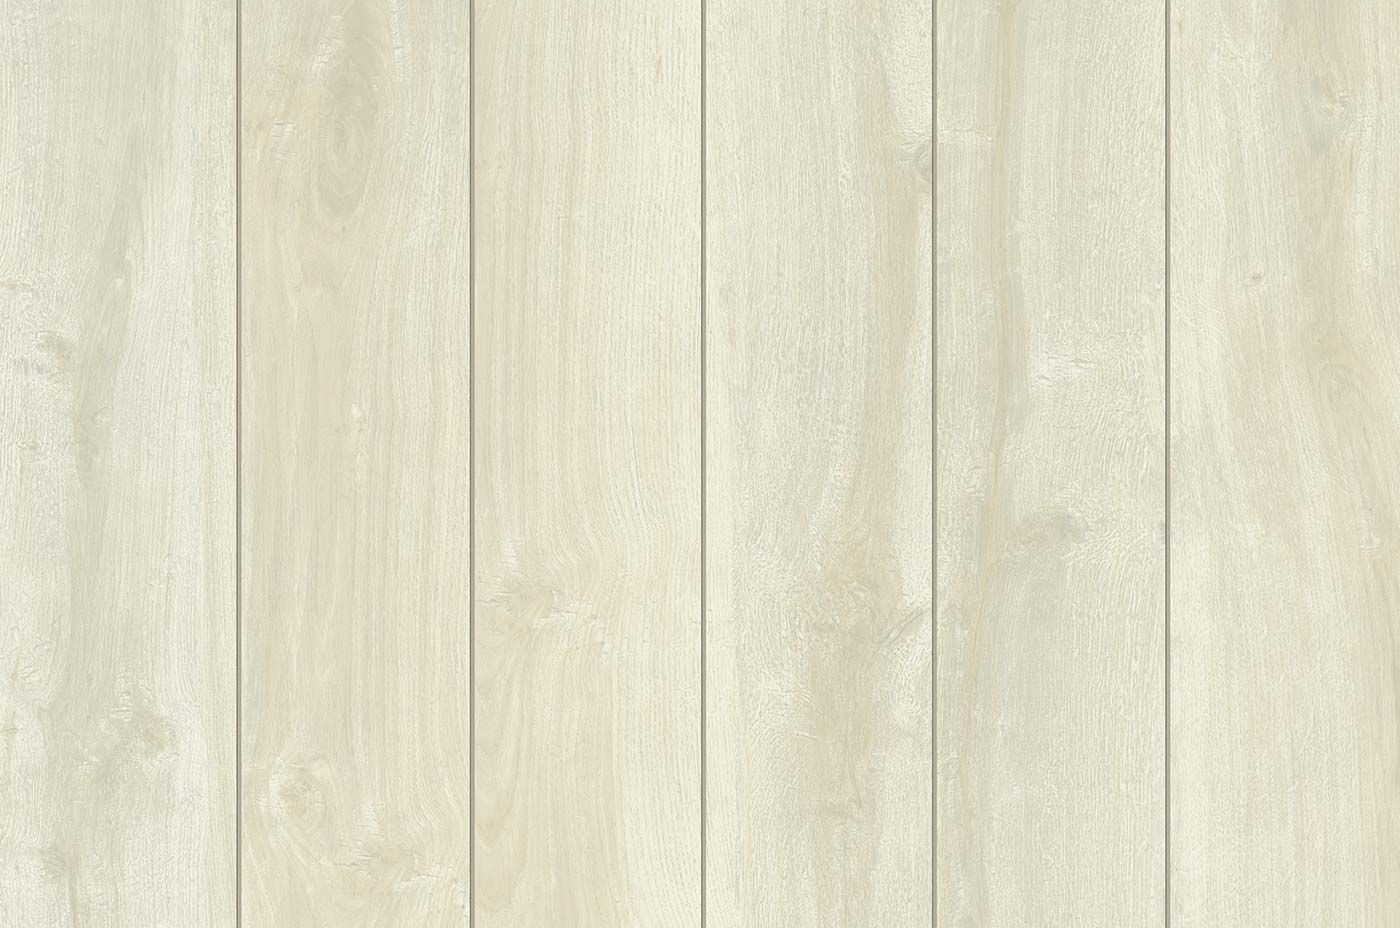 Florim usa urban wood white birch 6 x 36 tile flooring for Birch wood cost